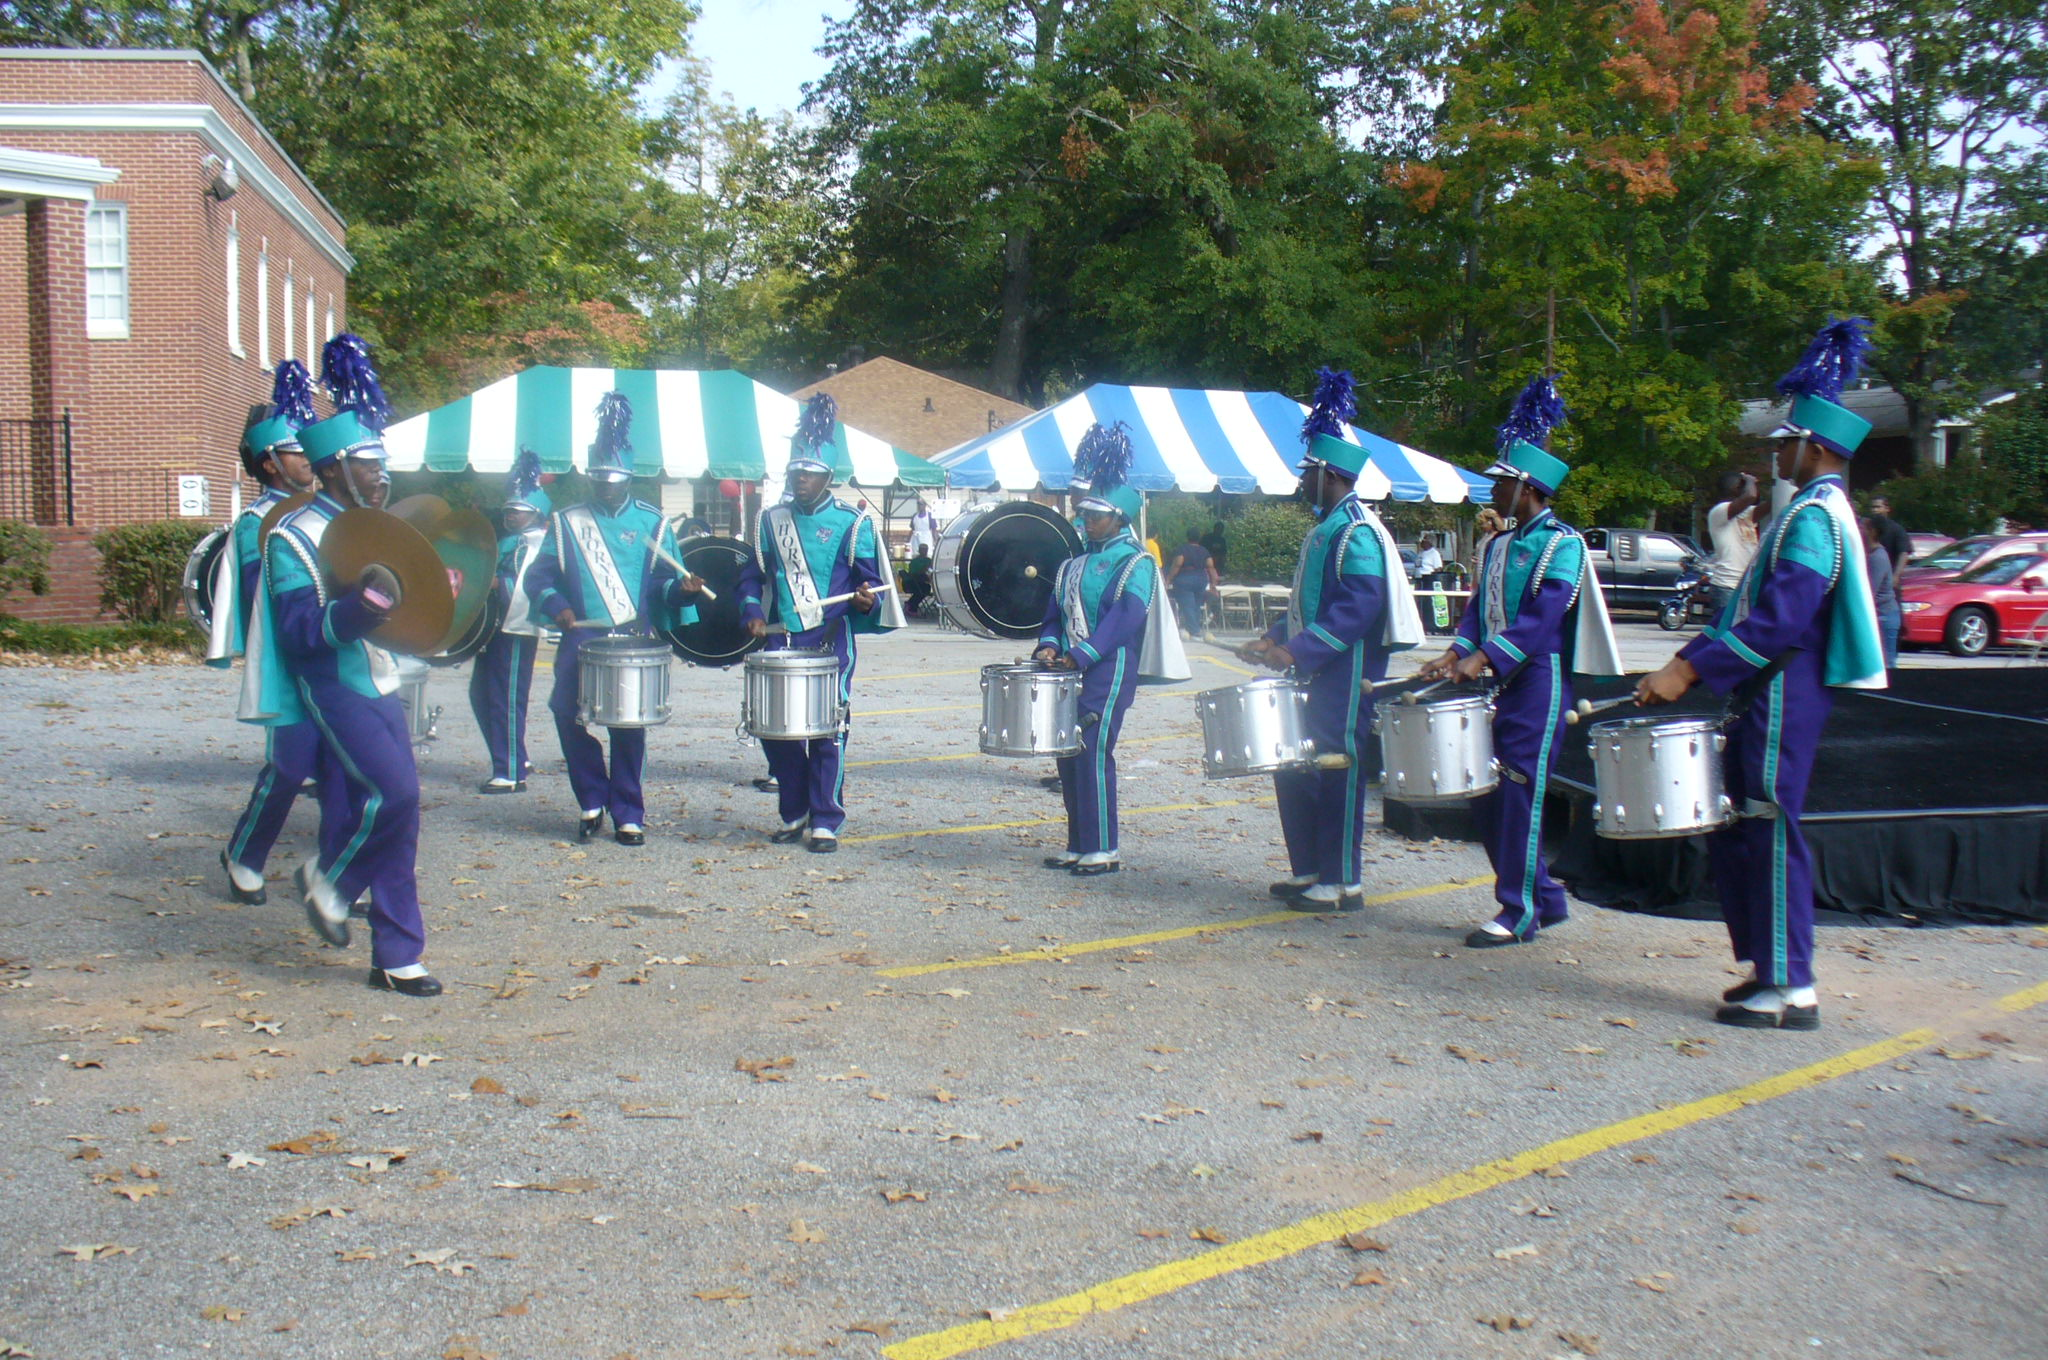 Drum line competitors. Looking cool in blue.